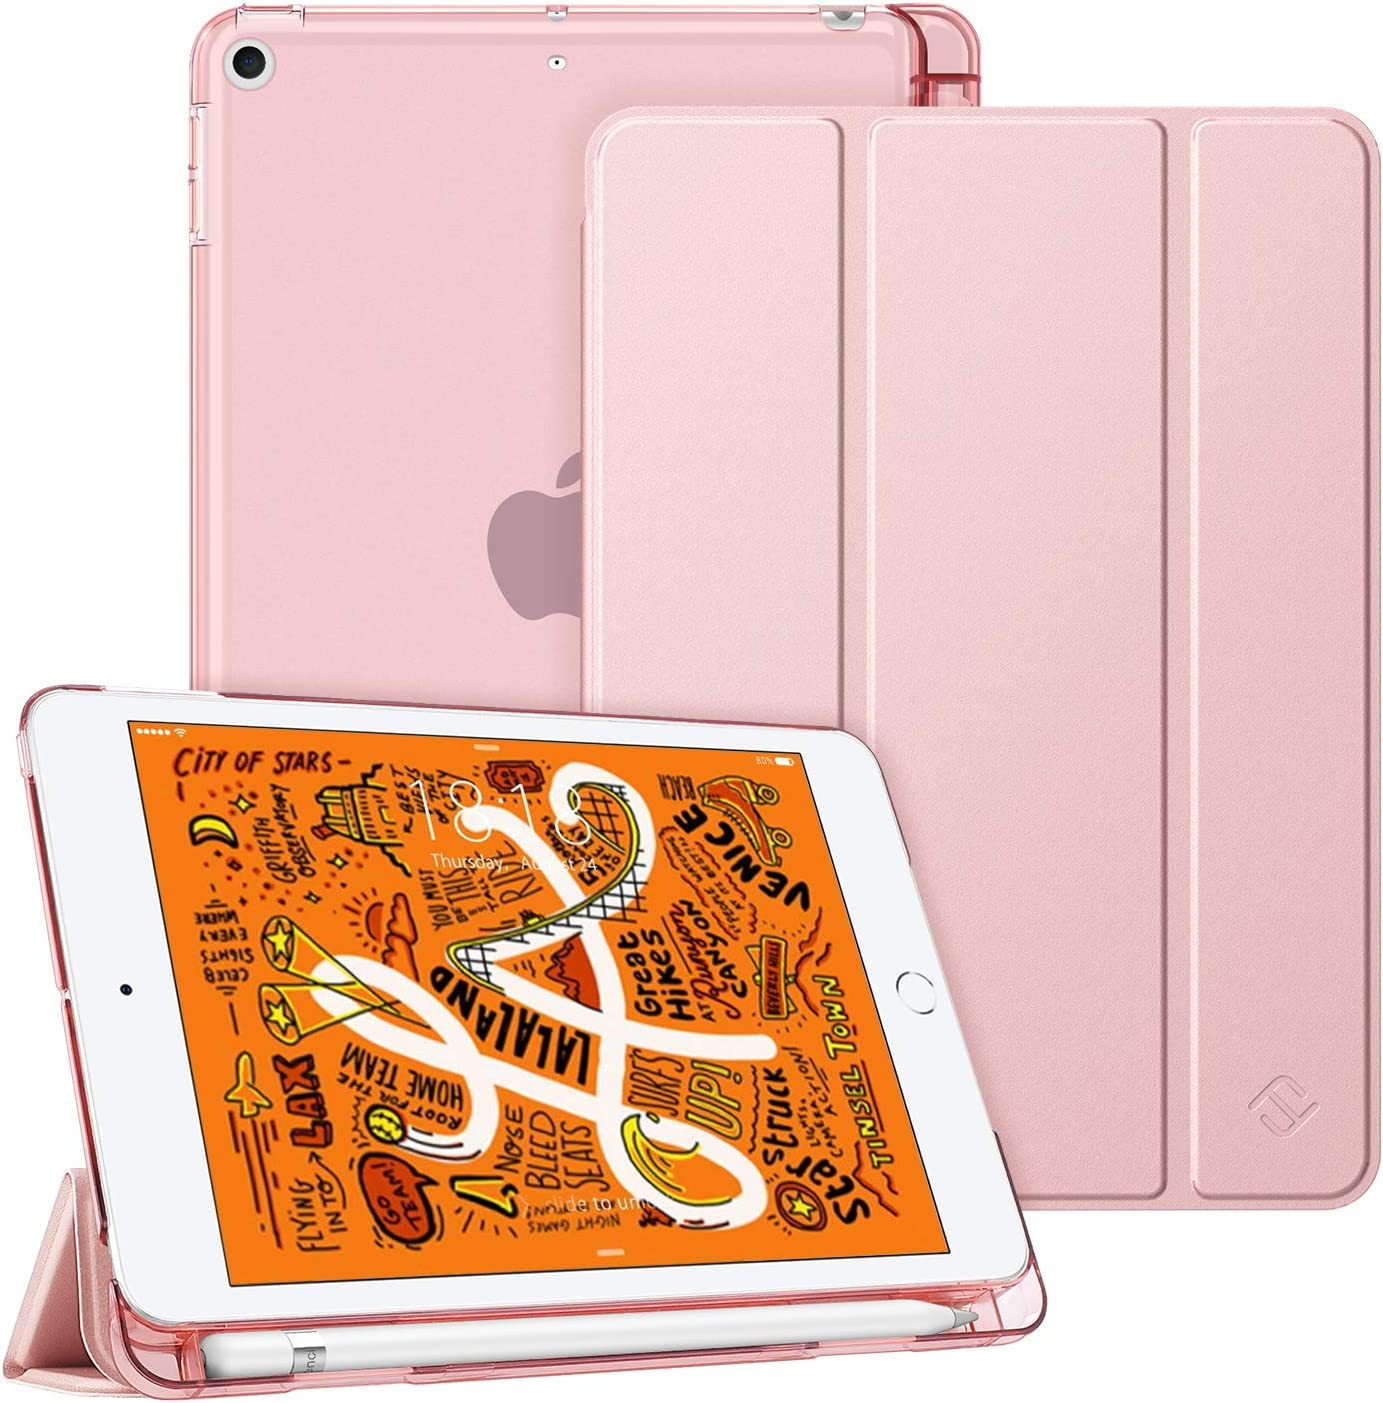 Fintie Case for iPad Mini 5 2019 - Lightweight Slim Shell Cover with Translucent Frosted Back Protector Supports Auto Wake/Sleep for iPad Mini 5th Generation 7.9 Inch, Rose Gold